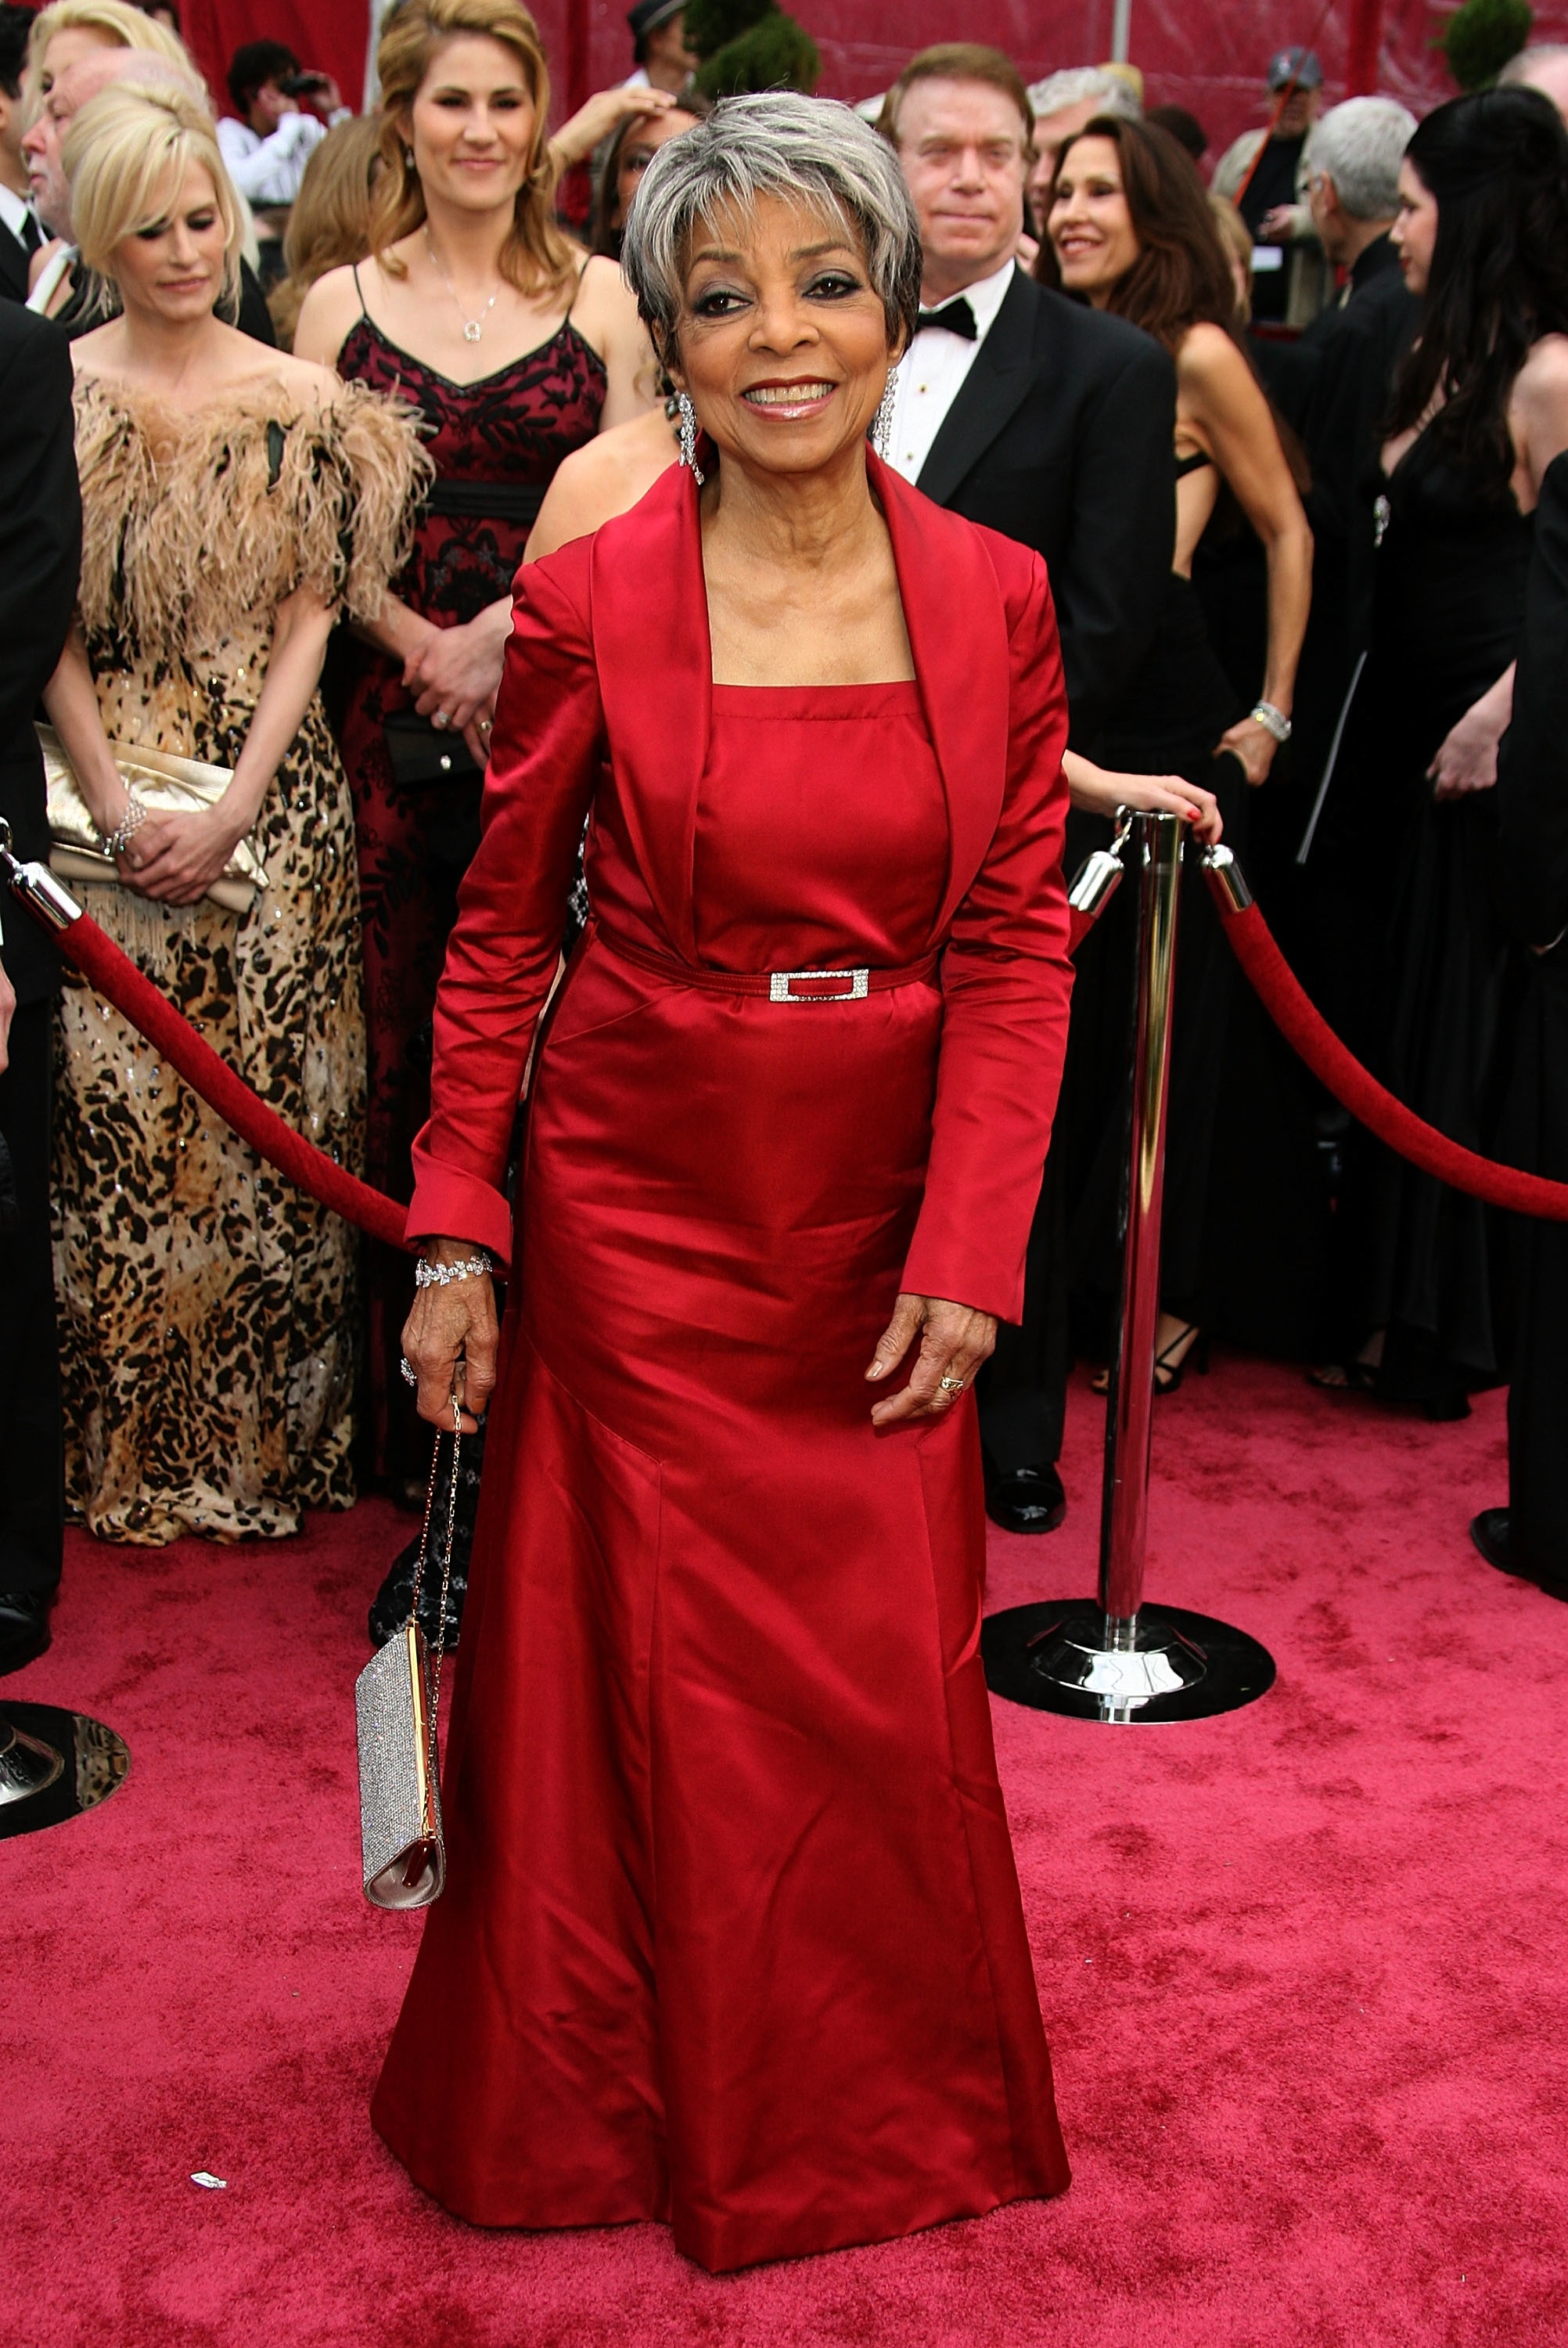 Dee's stunning look at the 2008 Academy Awards.